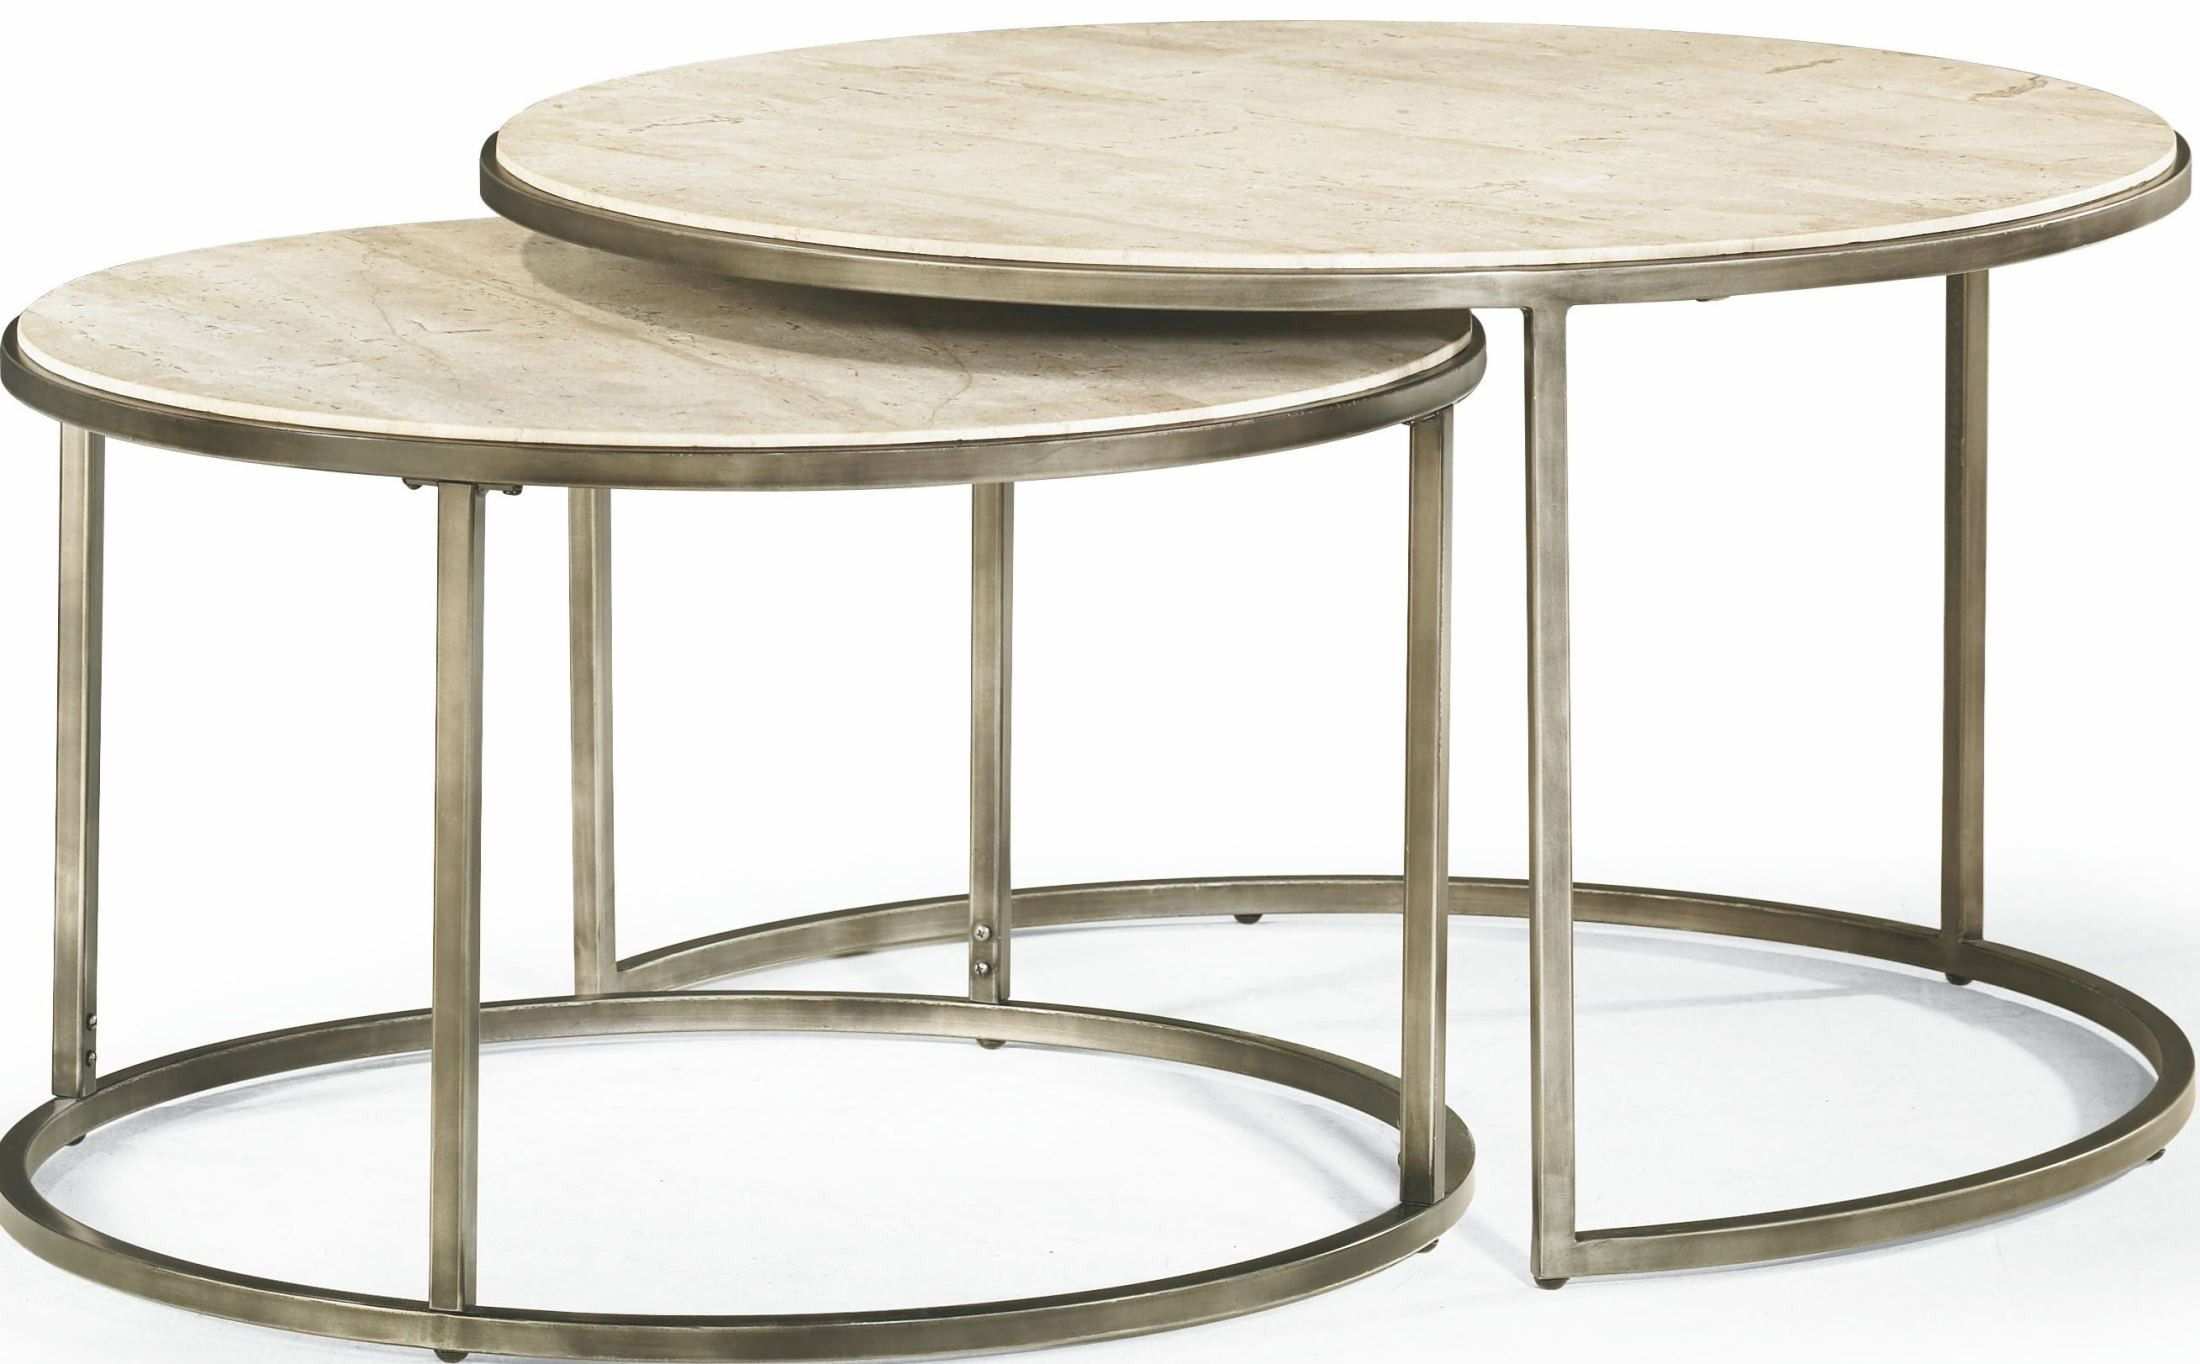 Modern basics round occasional table set from hammary